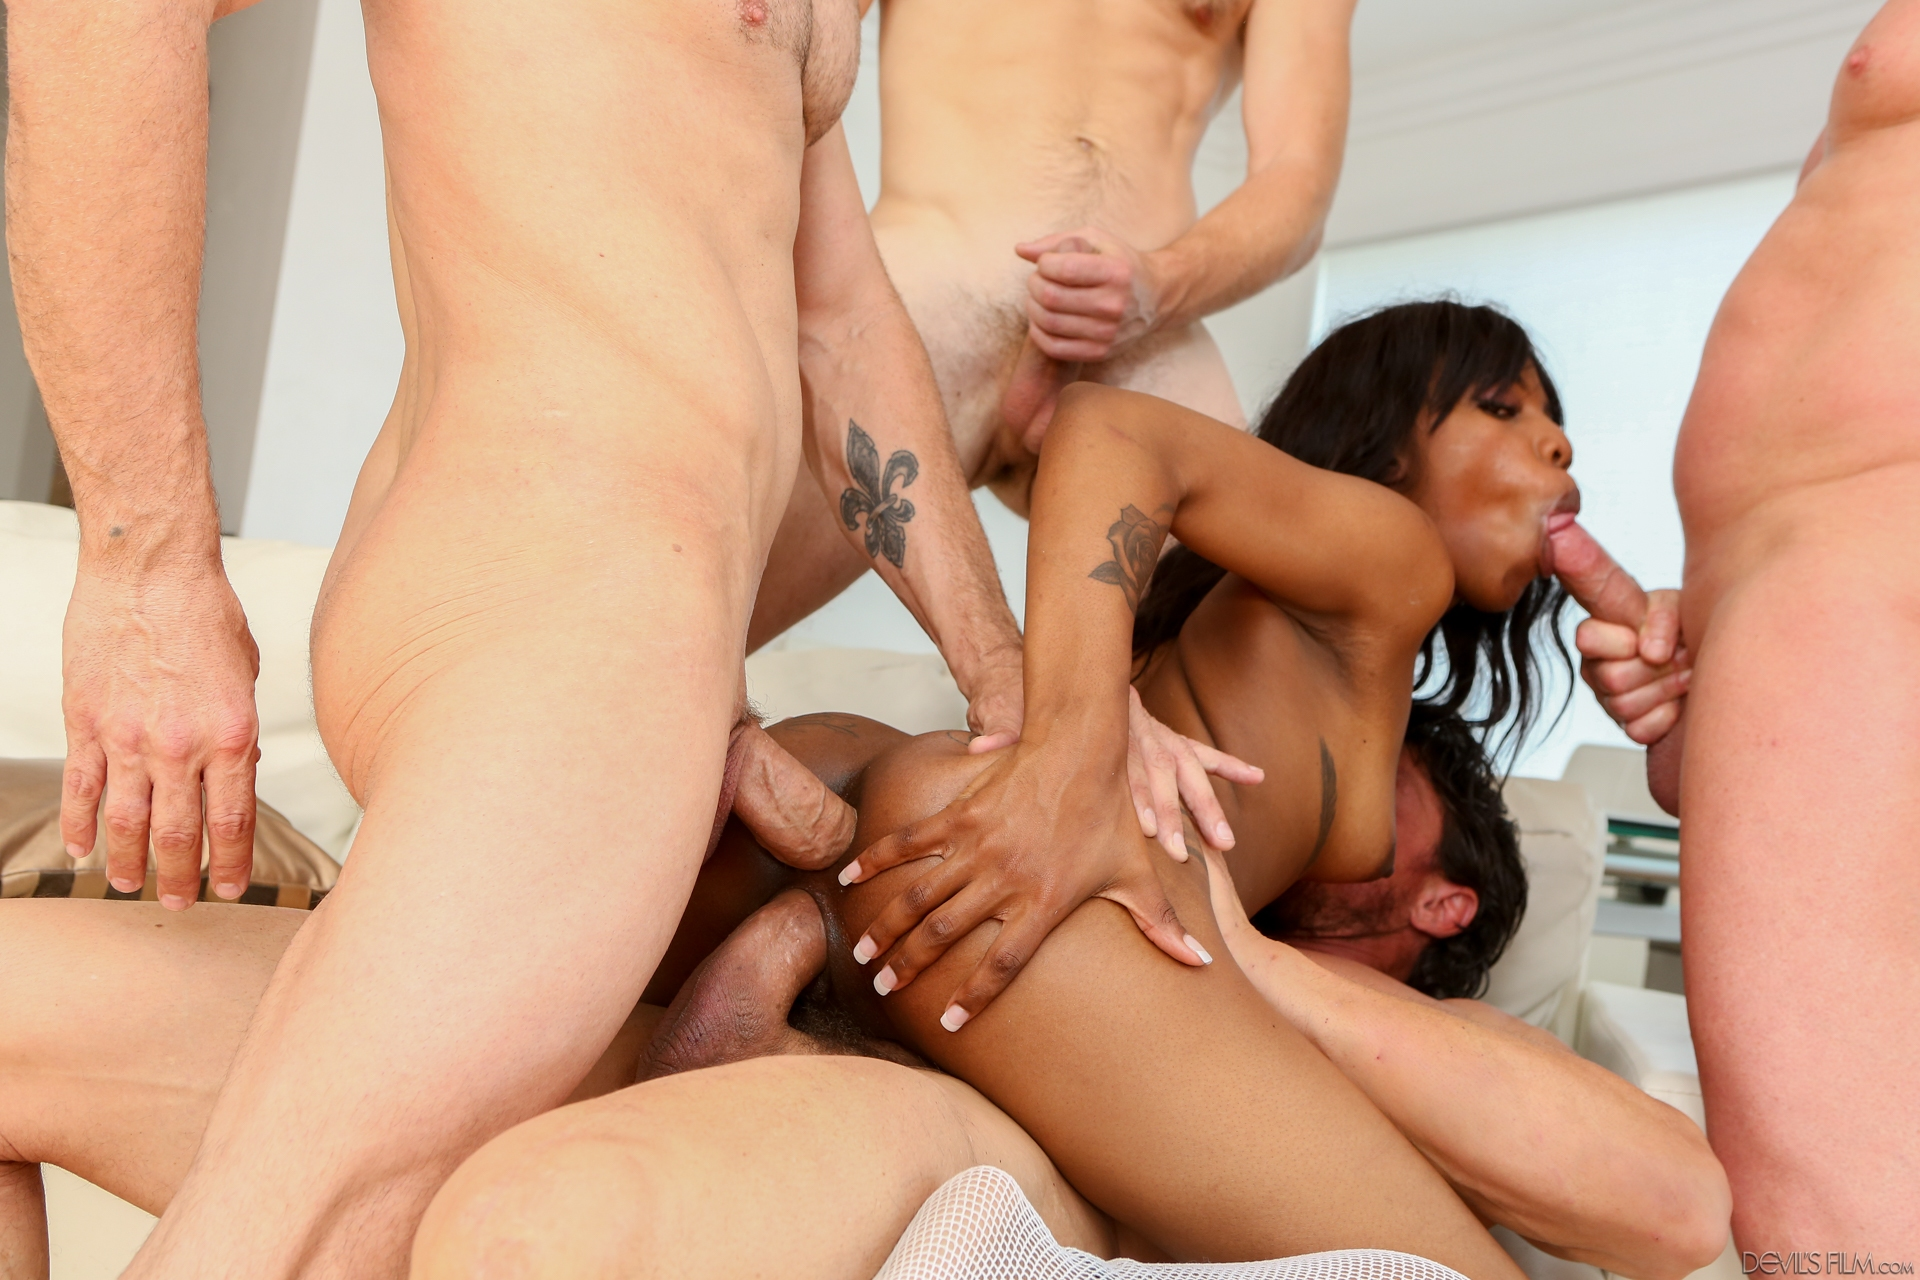 Black Girl White Guy  Most Sexy Porn  Free Hd  4K Photos-6377